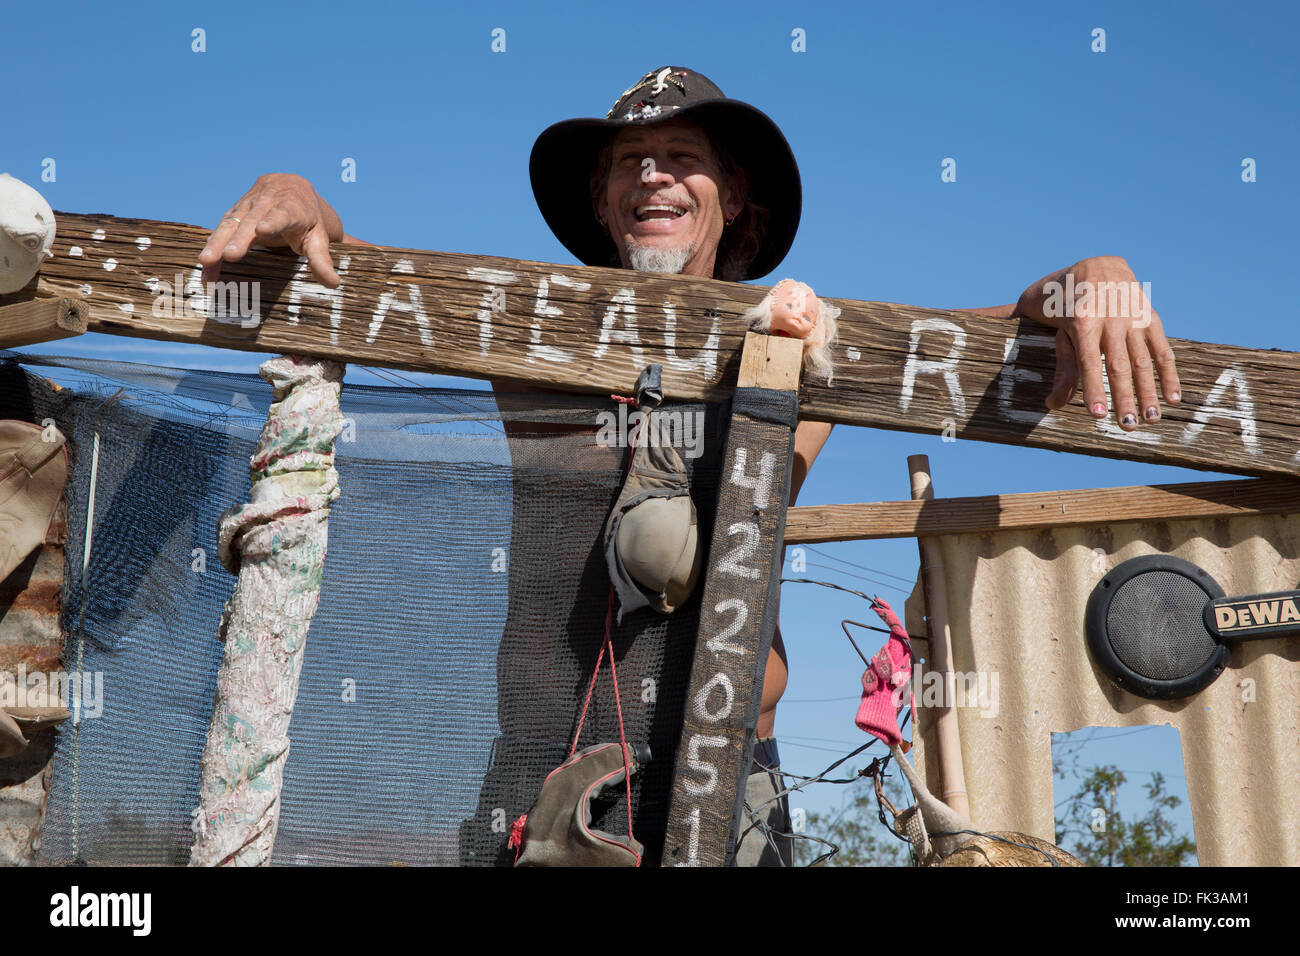 Karibe, a resident of Slab City, stands at the gate to his encampment, Niland, California USA - Stock Image